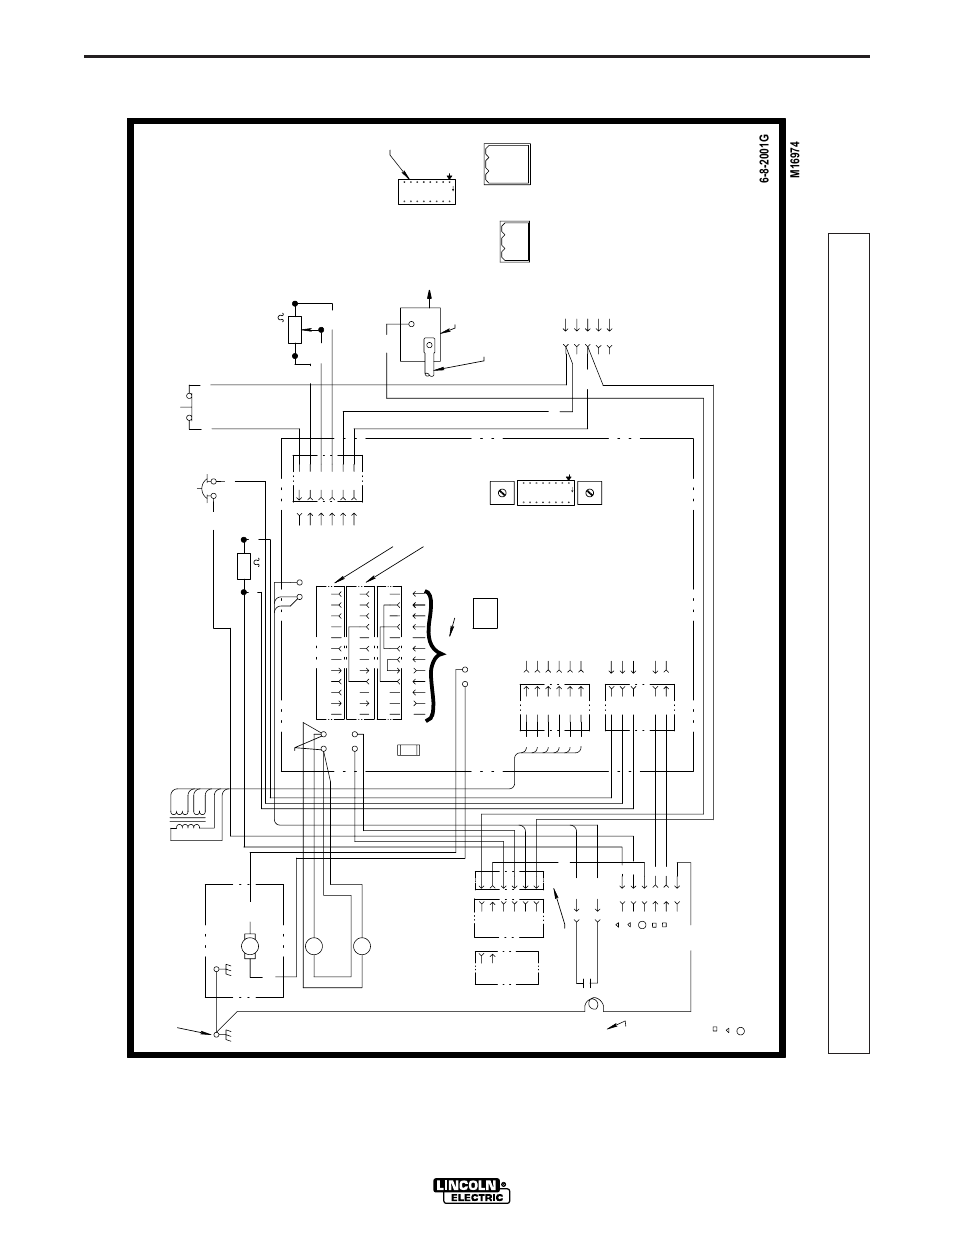 Lincoln Electric Wire Diagram : 29 Wiring Diagram Images